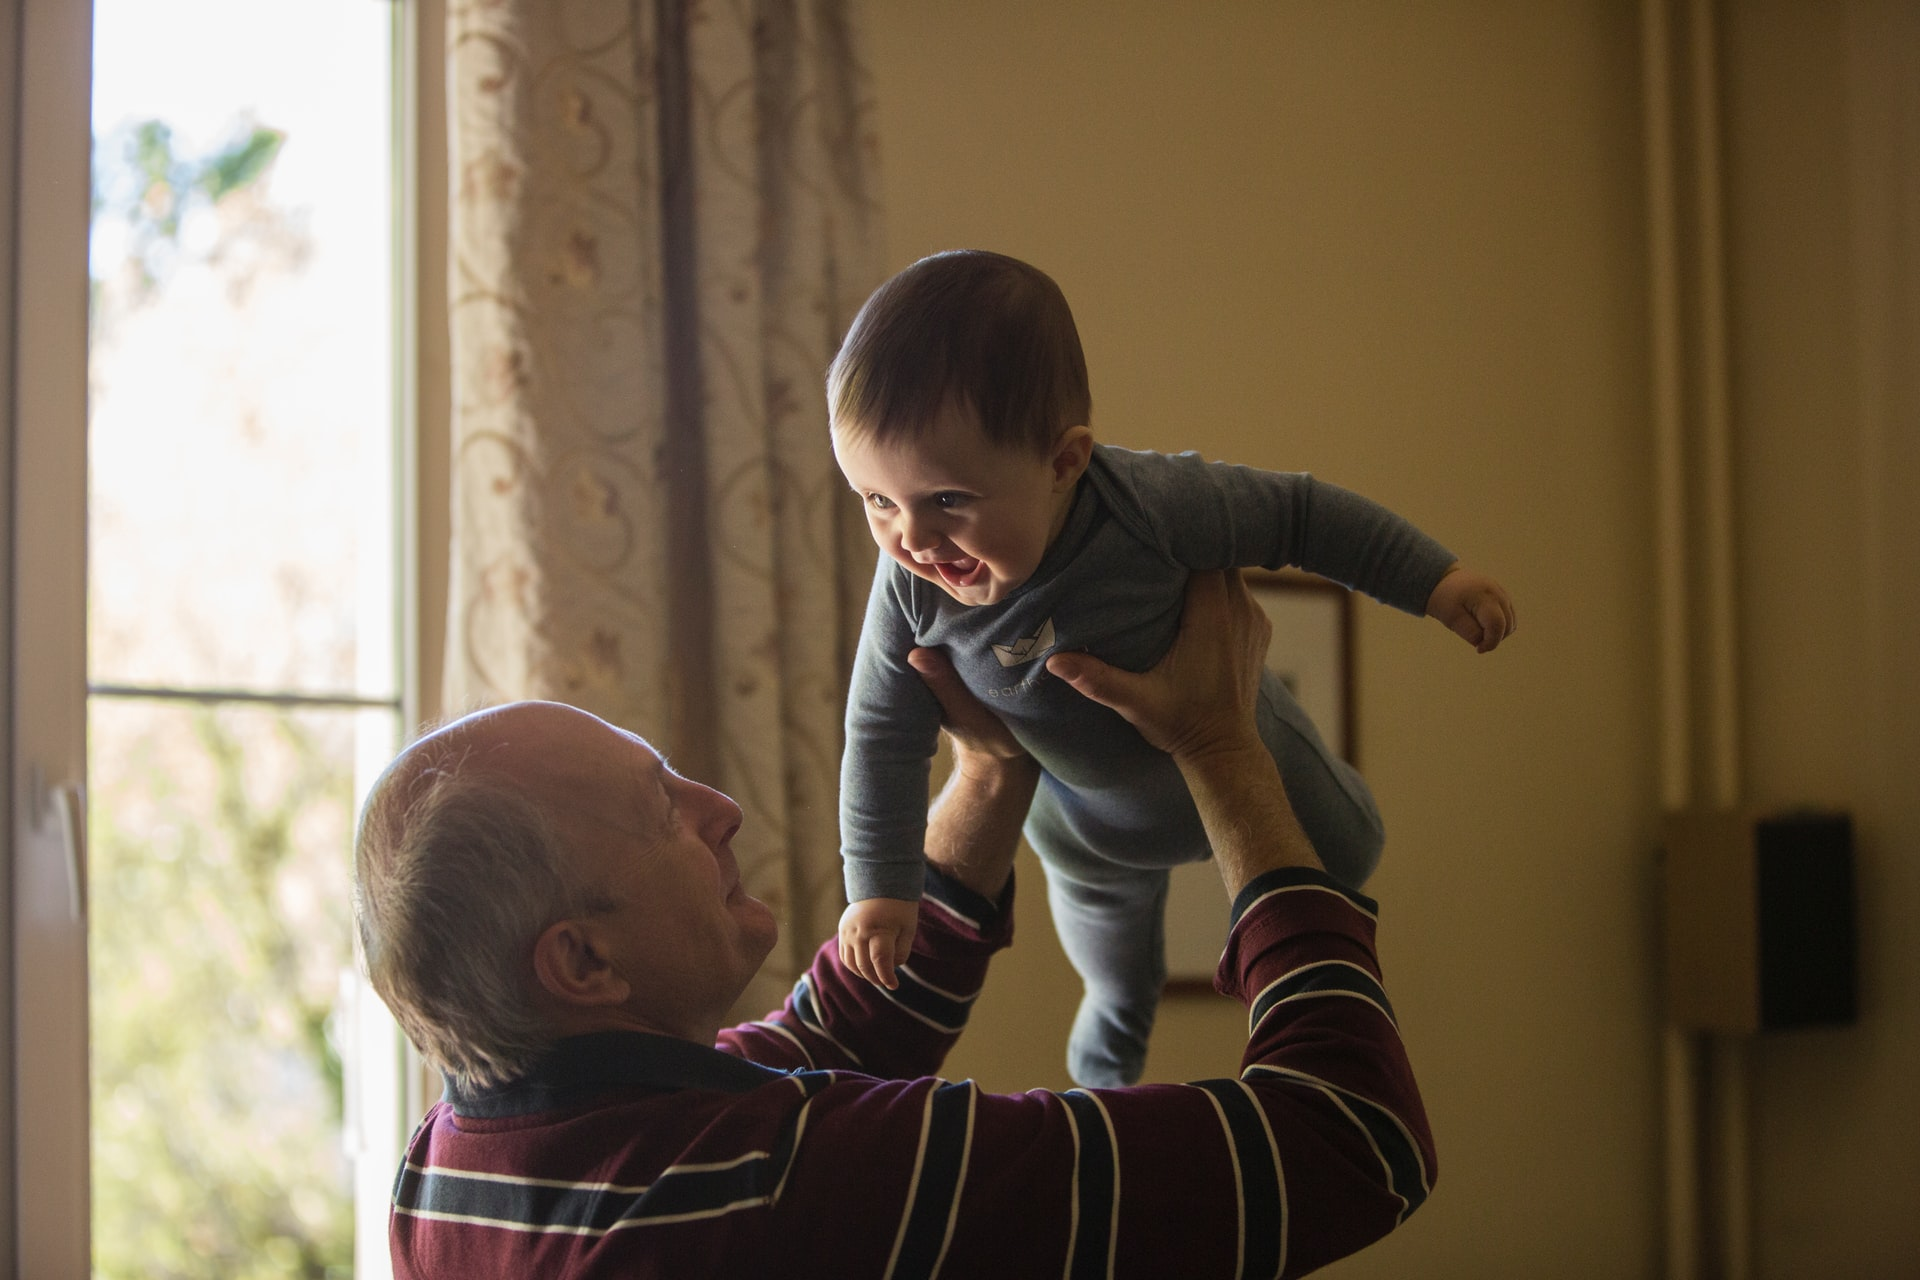 Babies' love of baby talk is universal, study finds